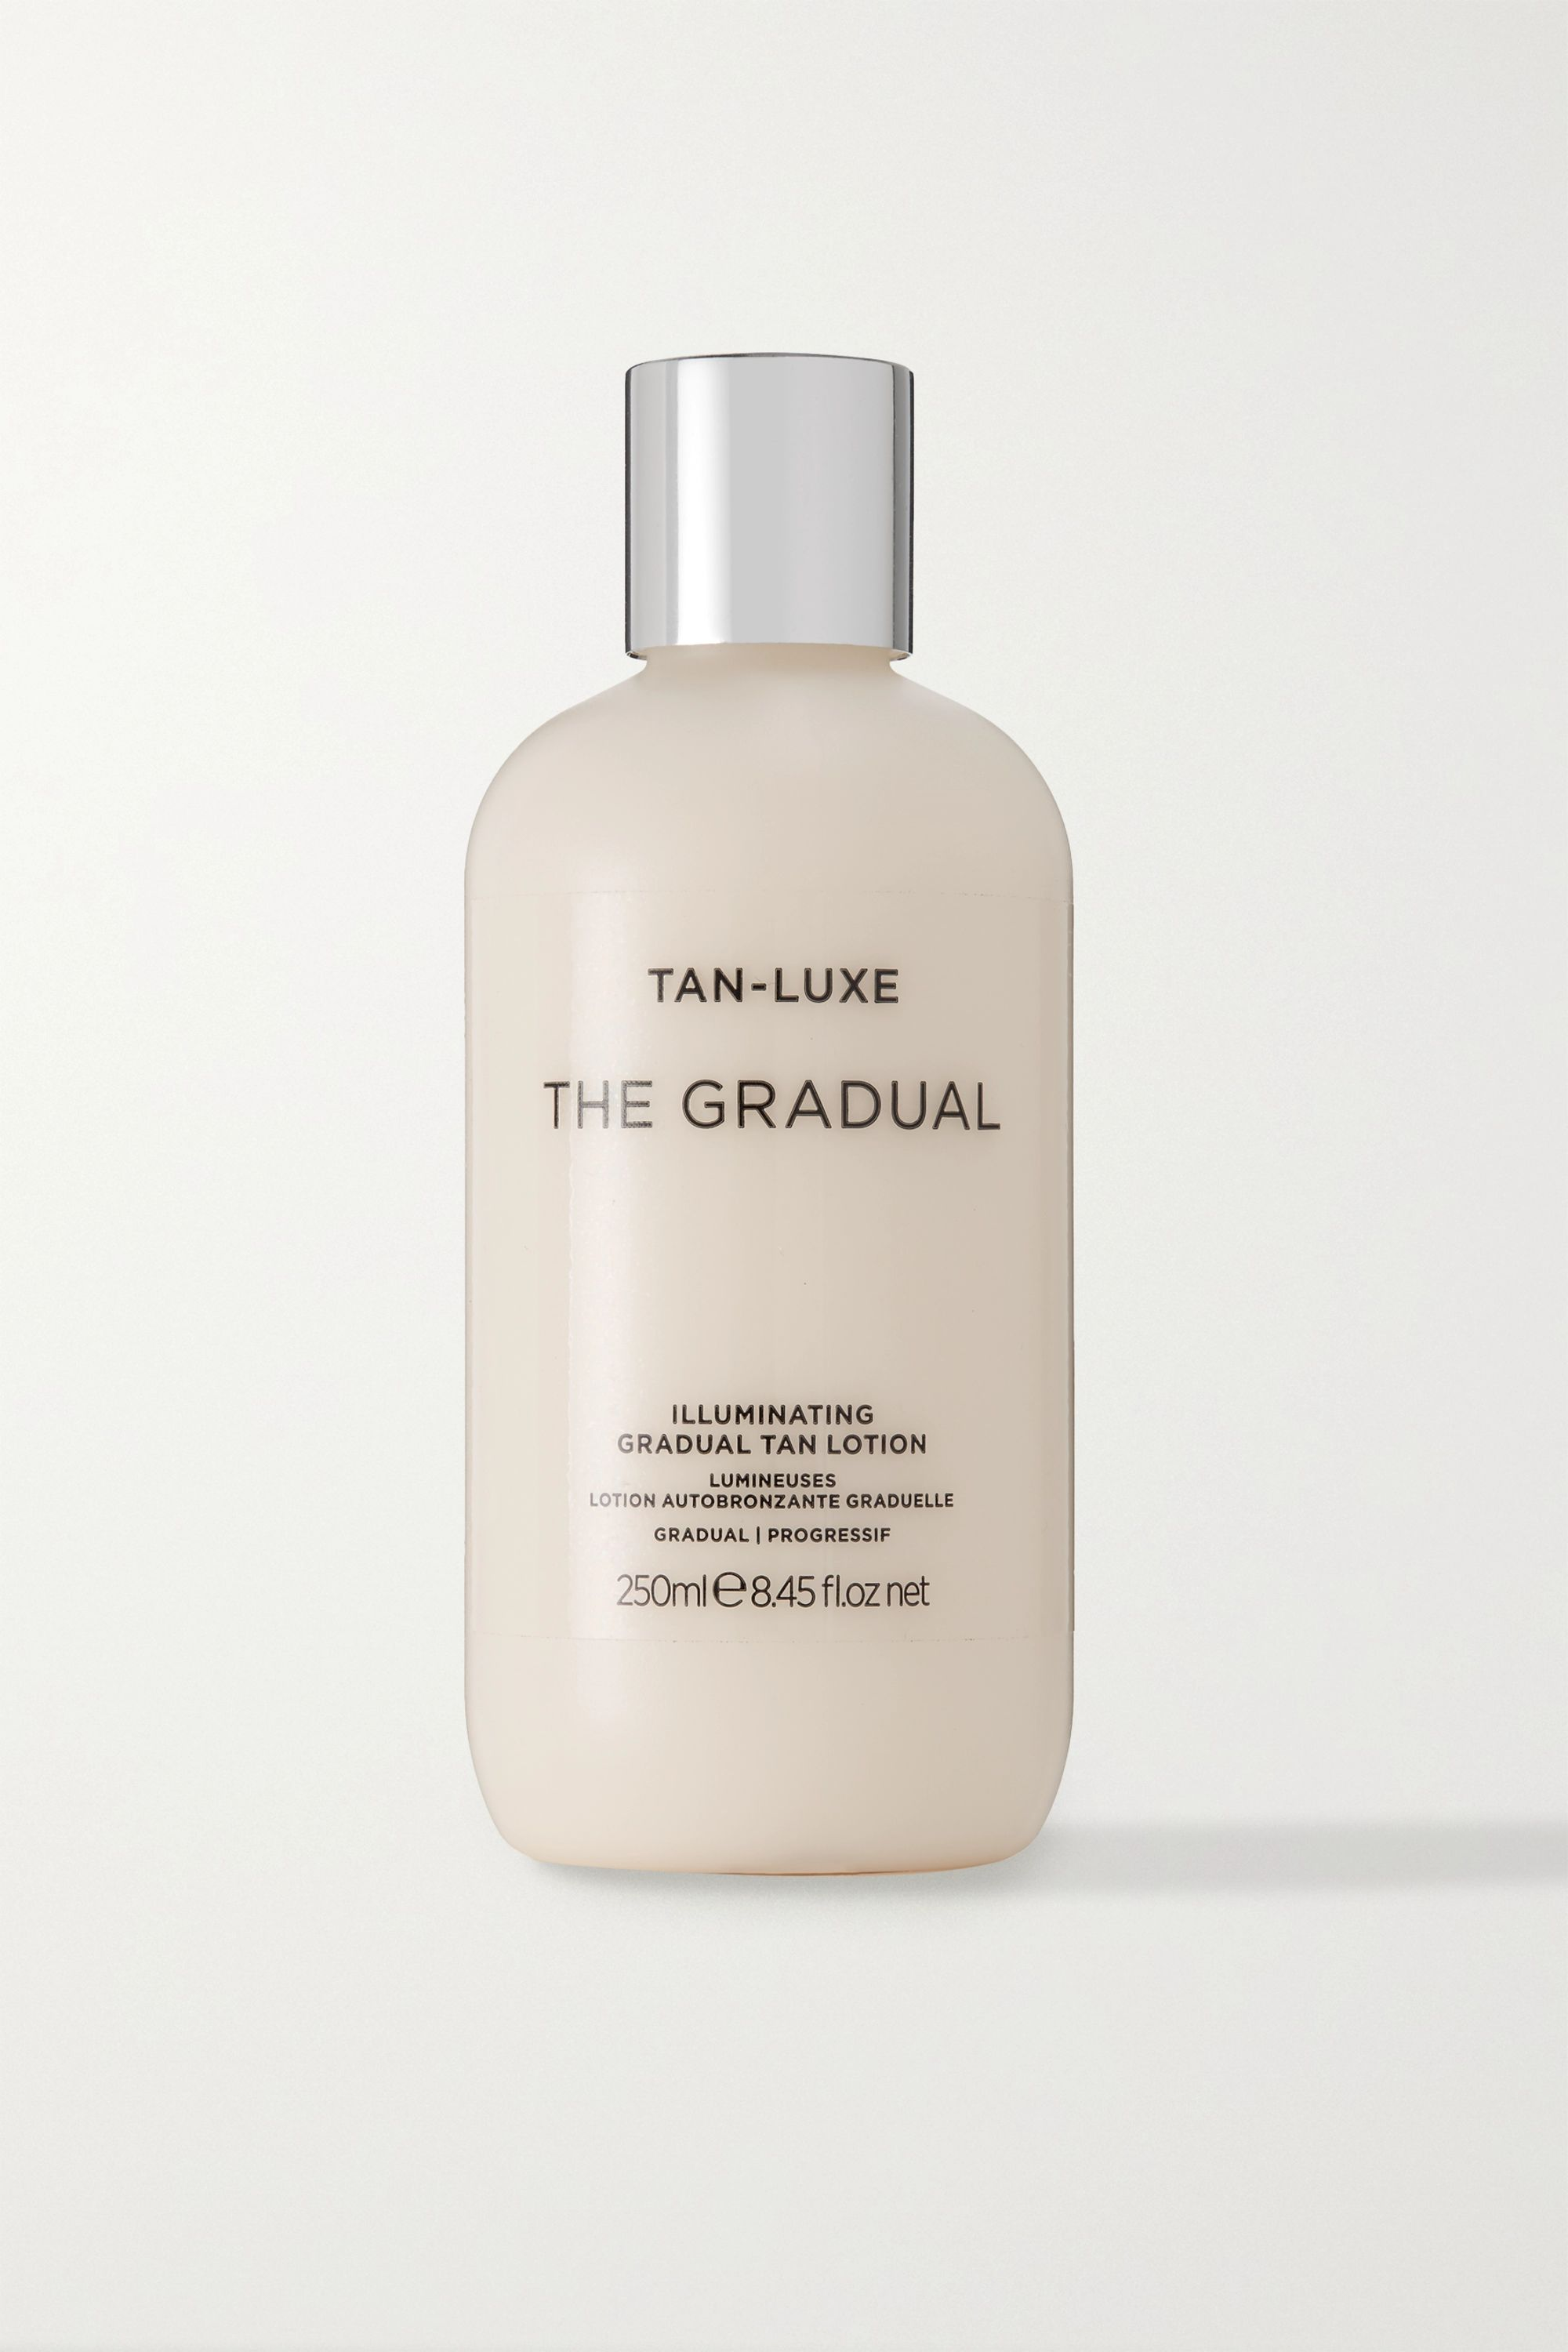 TAN-LUXE The Gradual Illuminating Gradual Tan Lotion, 250ml